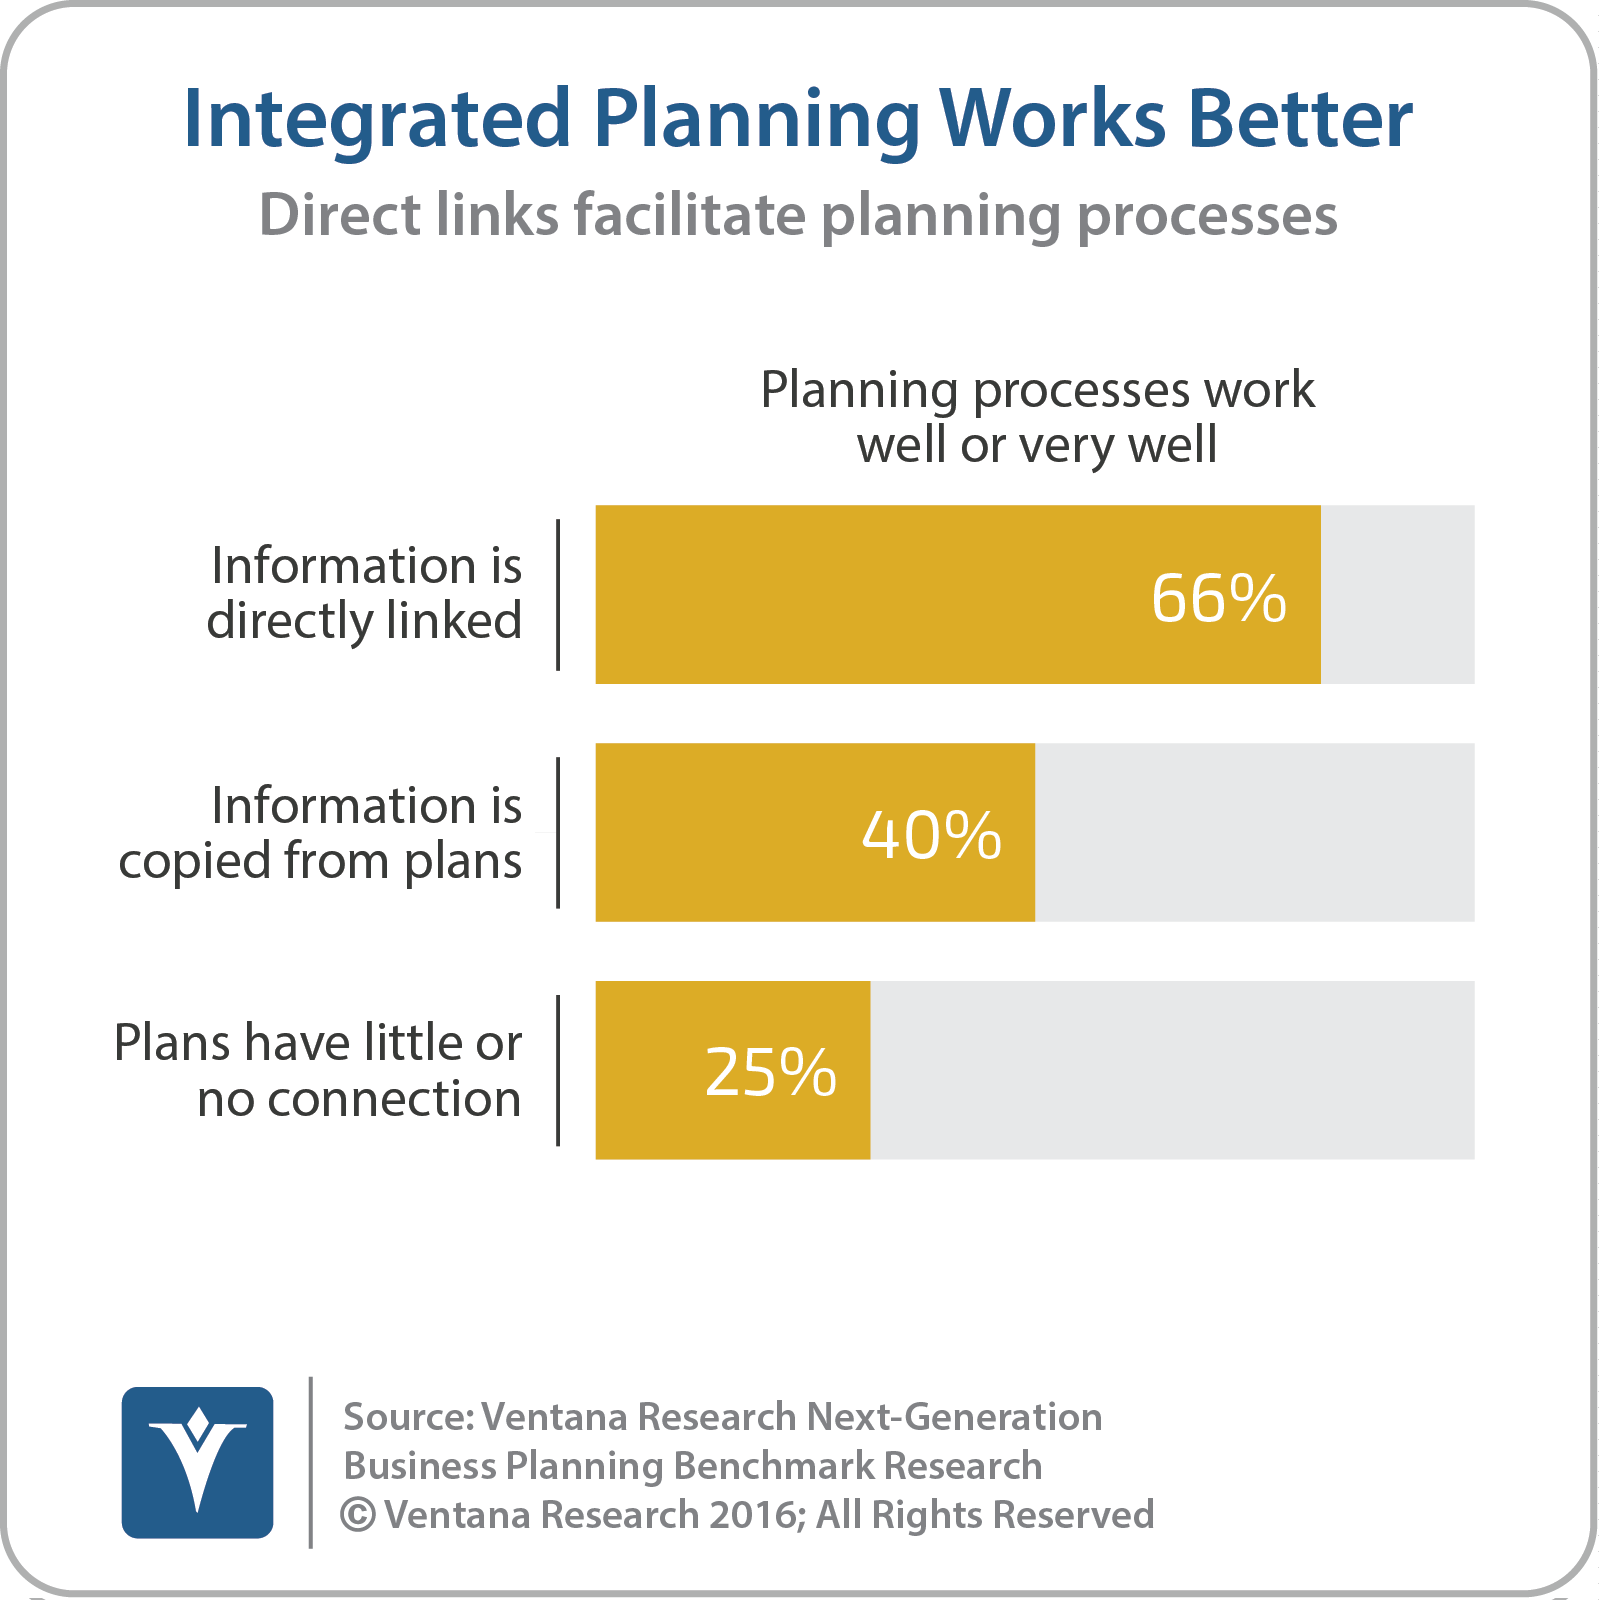 vr_NGBP_02_integrated_planning_works_better_update-6.png